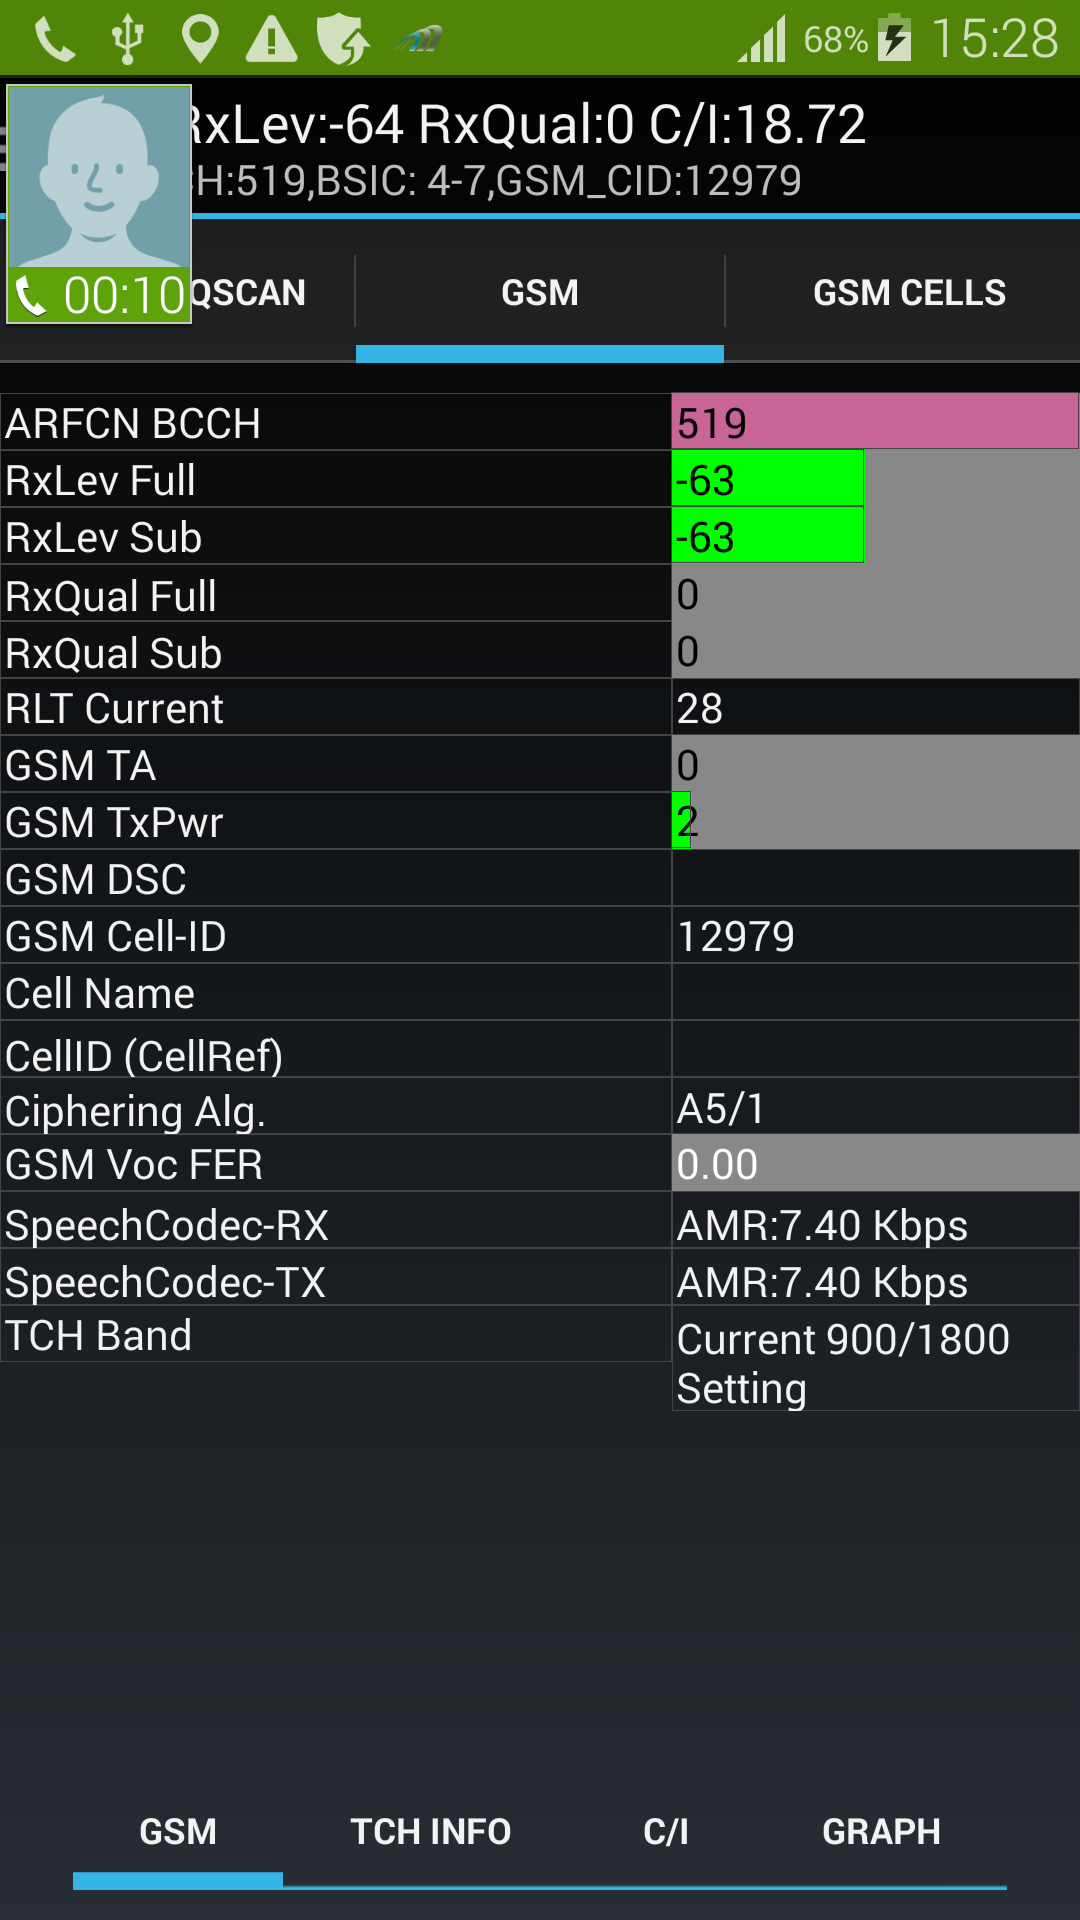 AZQ on Samsung S5 GSM Radio Parameters